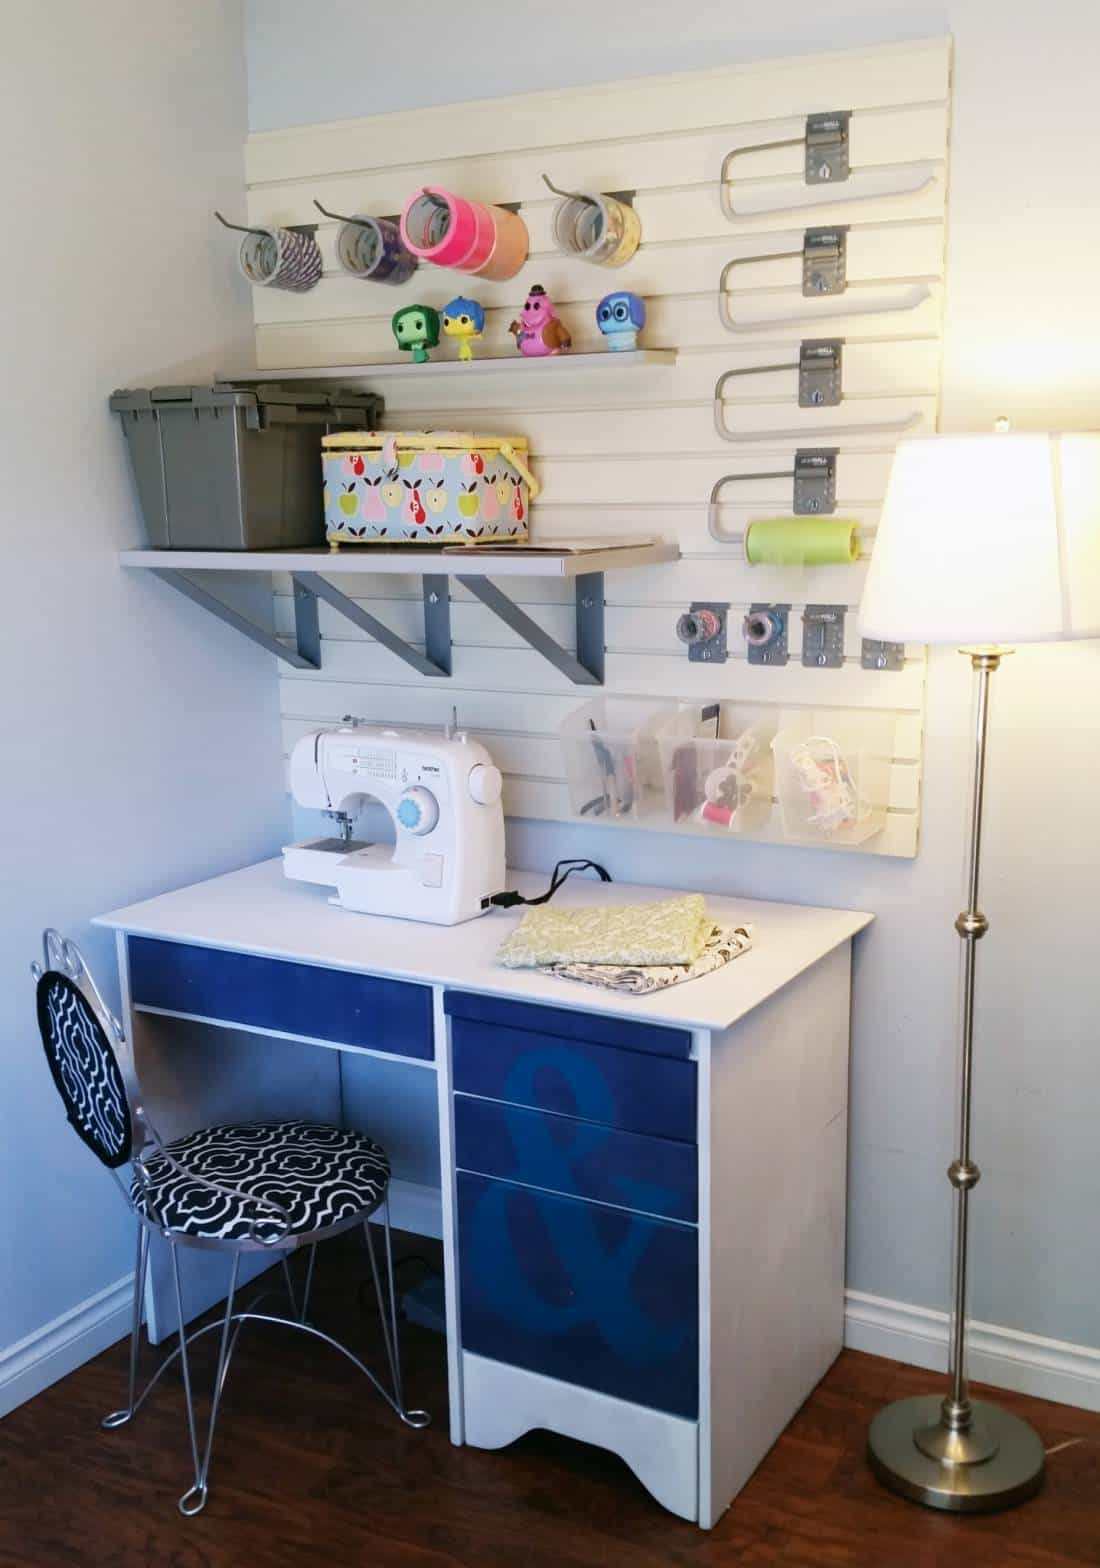 Diy – My New Craft Corner! Reclaimed Desk Plus Ideas For Storage & Design